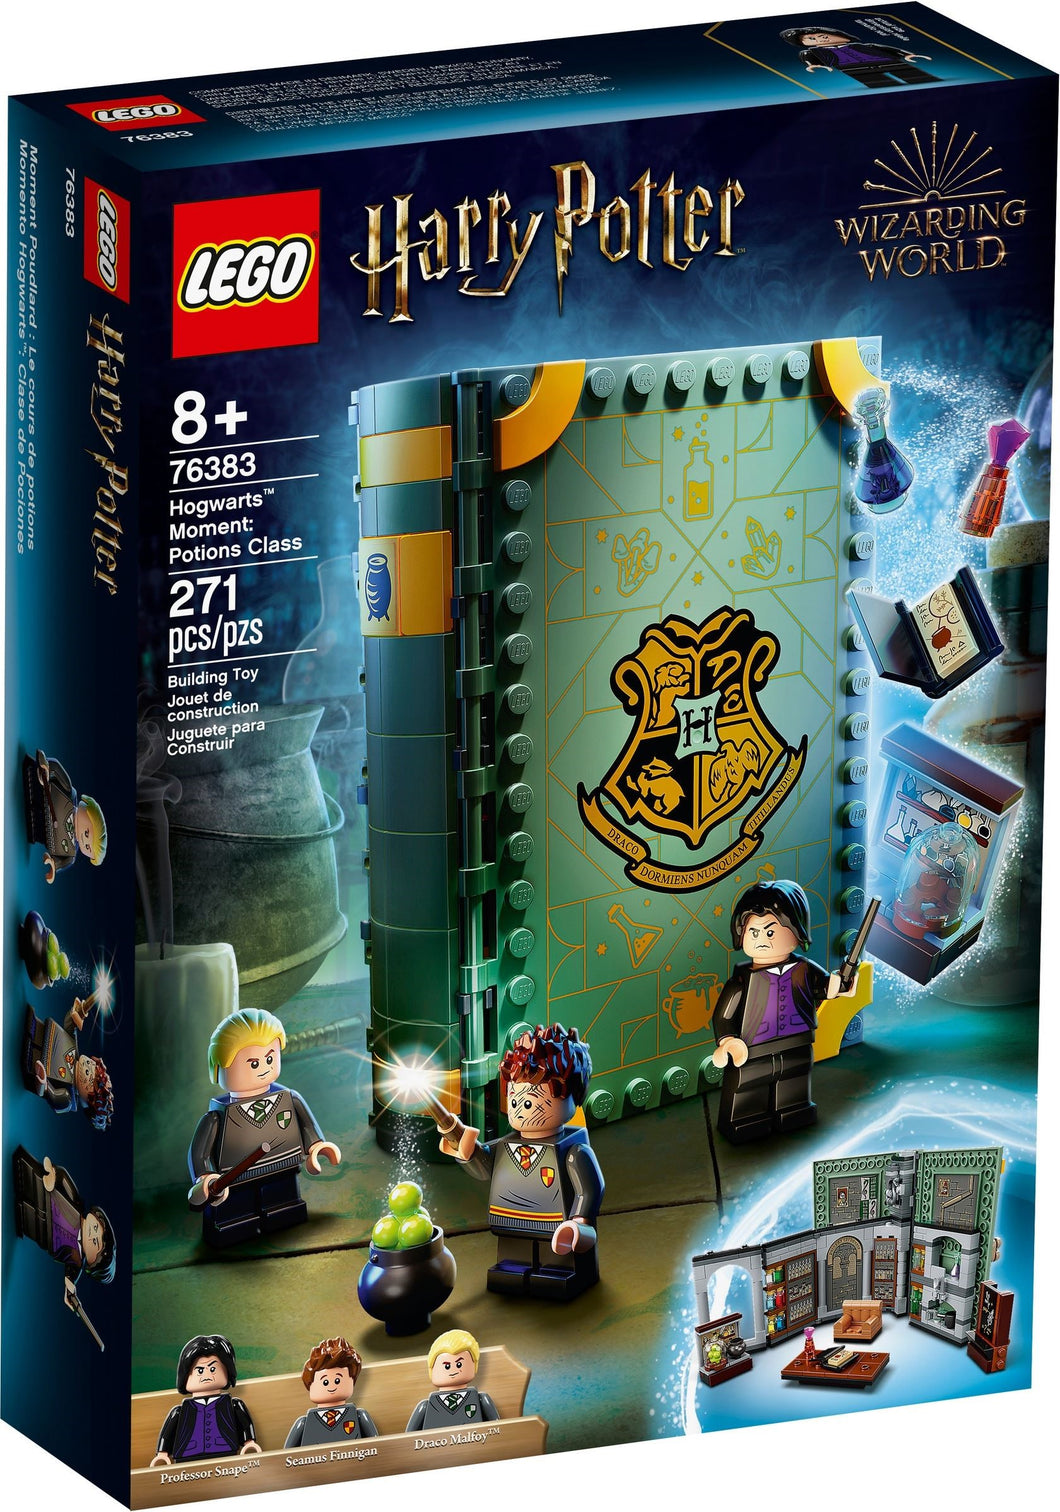 76383 Lego Harry Potter Hogwarts Moment: Potions Class